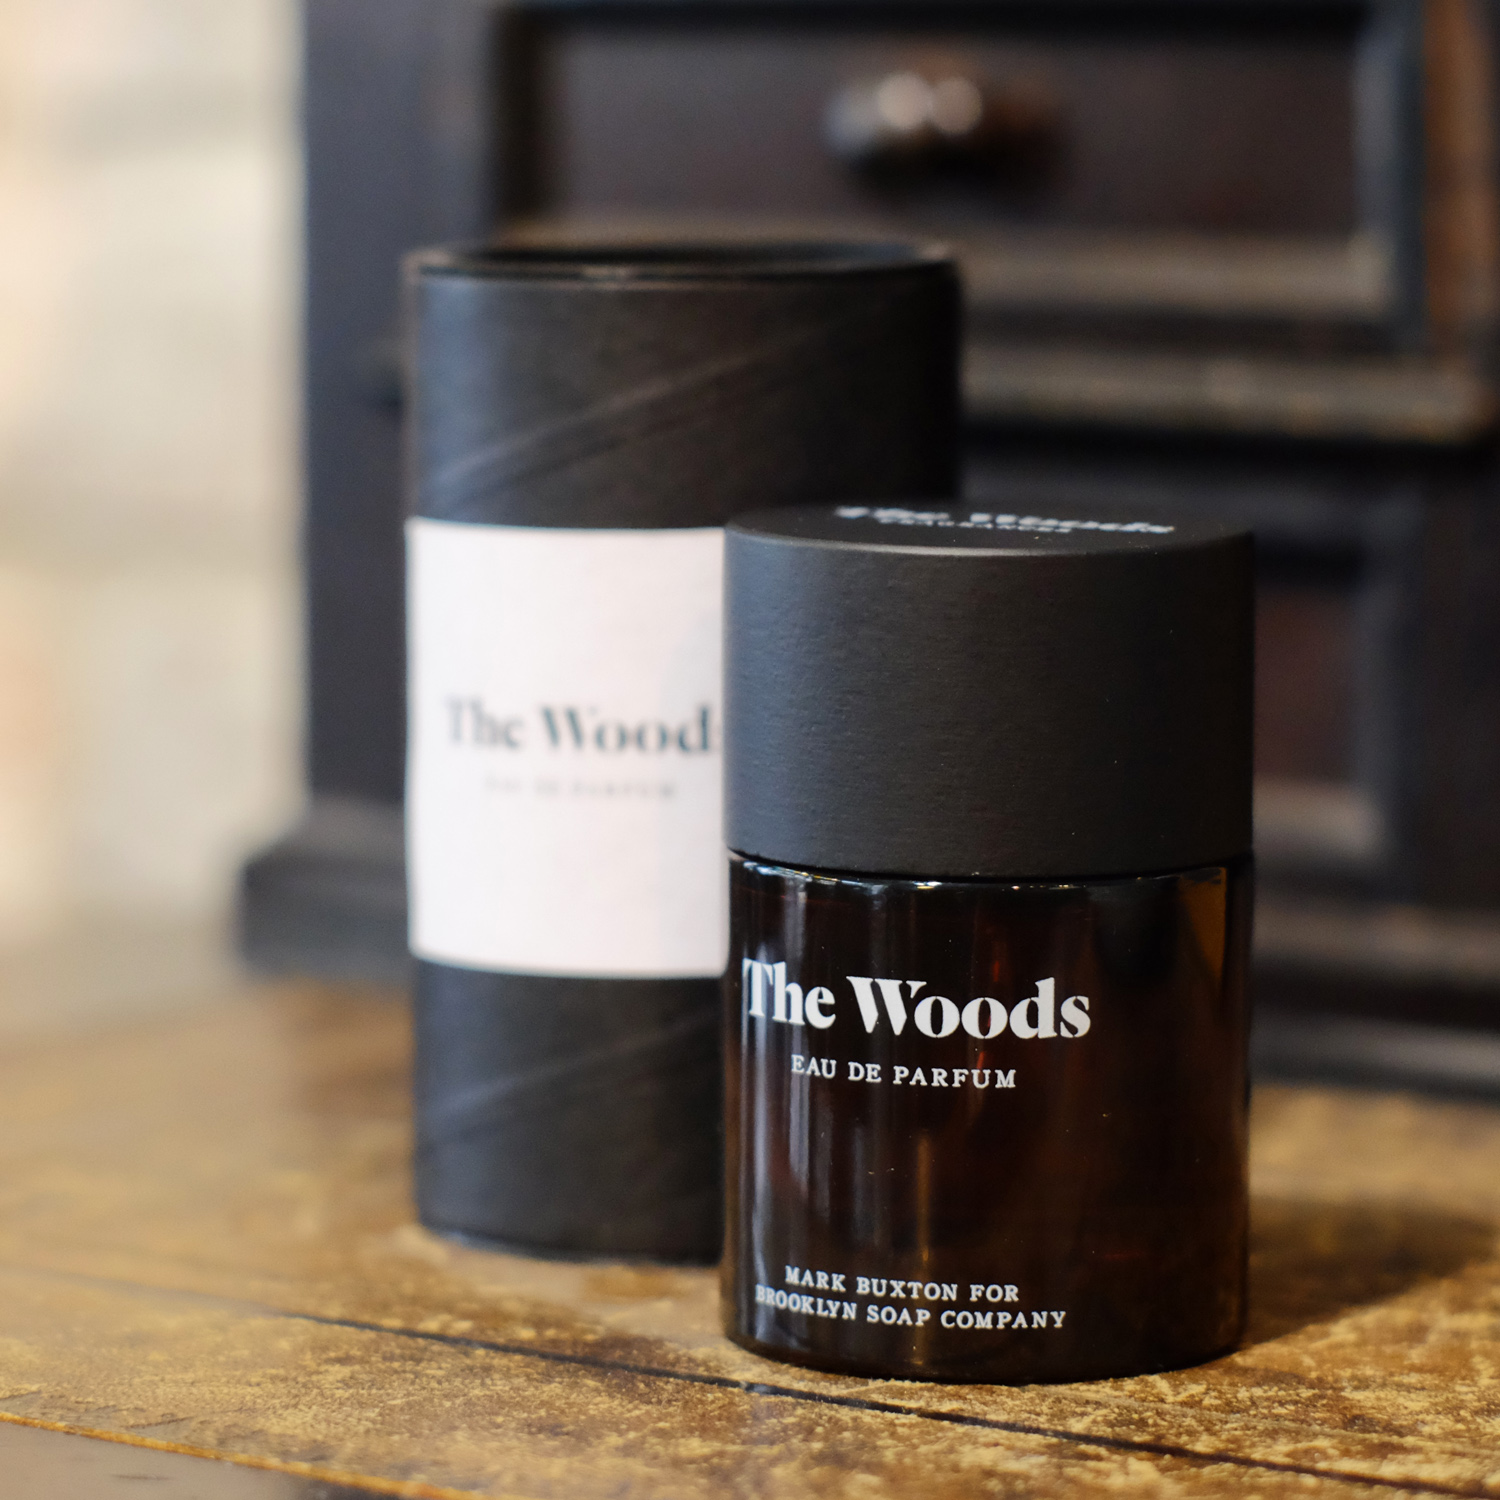 brooklyn soap company duft herren parfum the woods. Black Bedroom Furniture Sets. Home Design Ideas